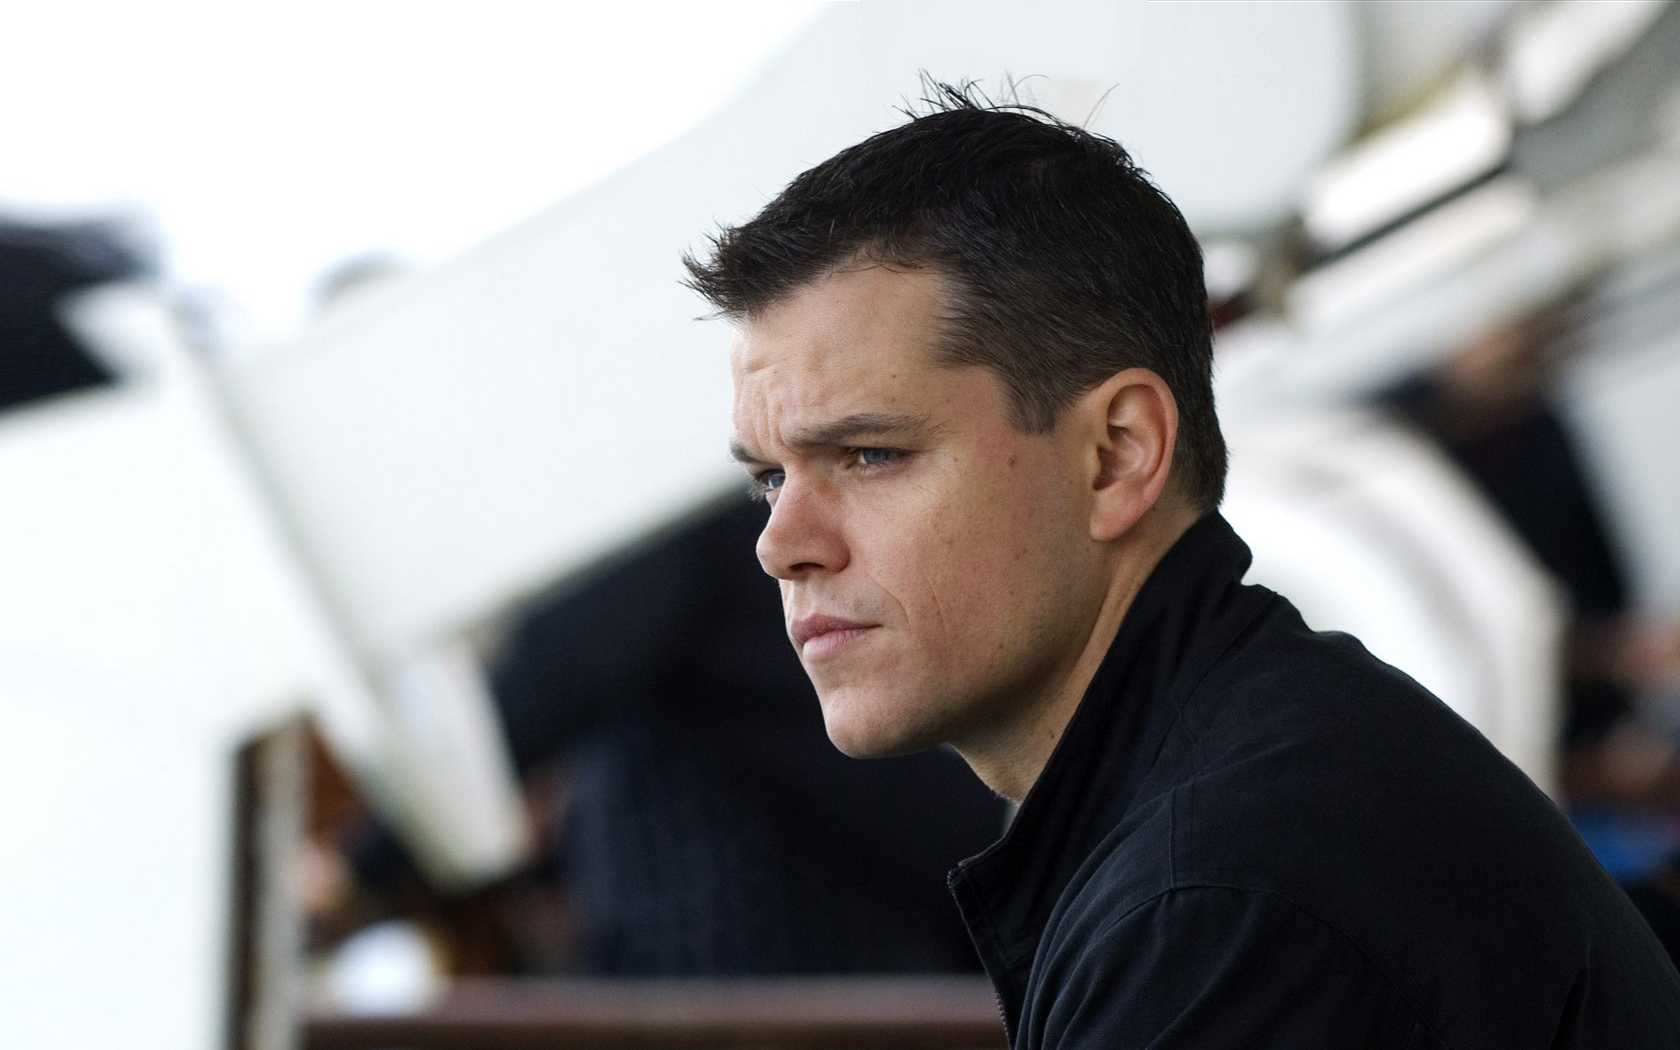 Beyond The Ultimatum: Matt Damon Confirms Return To Jason Bourne Role | Matt Damon